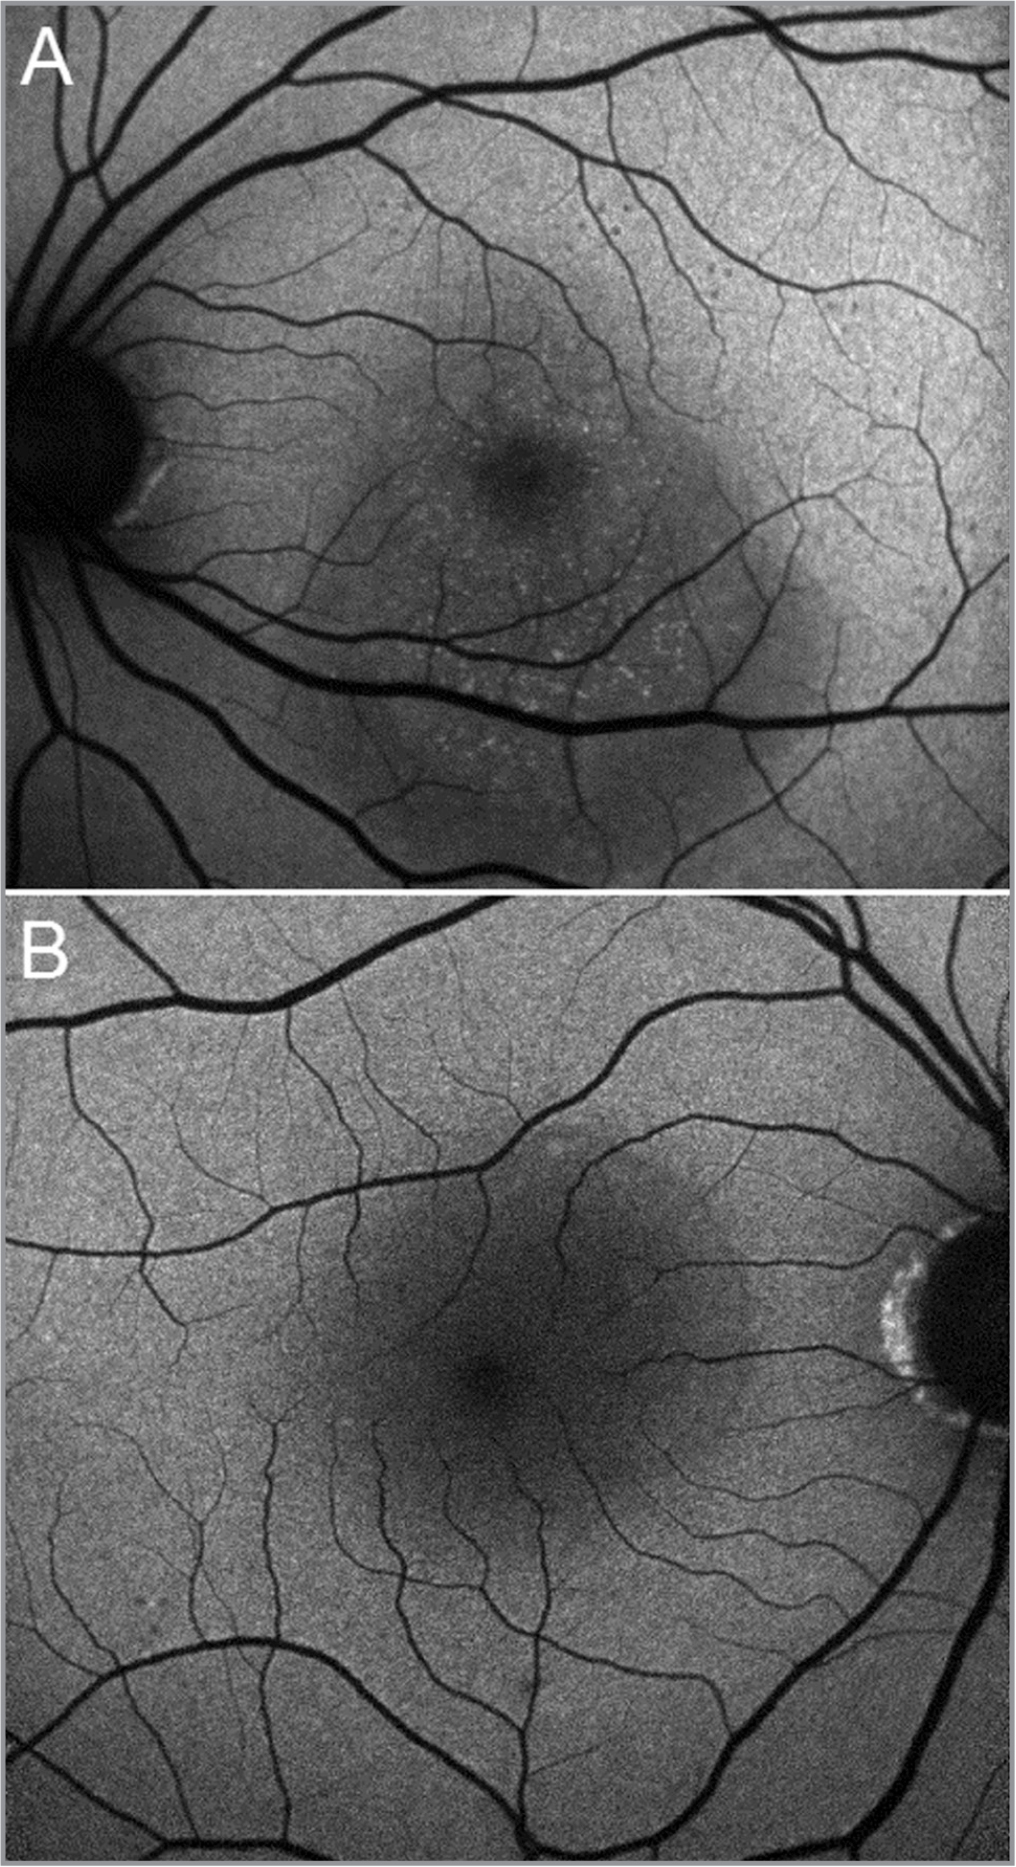 Lesion visibility in patients of different age and media opacity. (A) Female patient age: 39 years. Transparent optical media. Most of the test applications are visualized. (B) Male patient age: 57 years. A slight decrease in the transparency of optical media can be observed. Only laser applications applied with high power are visualized.